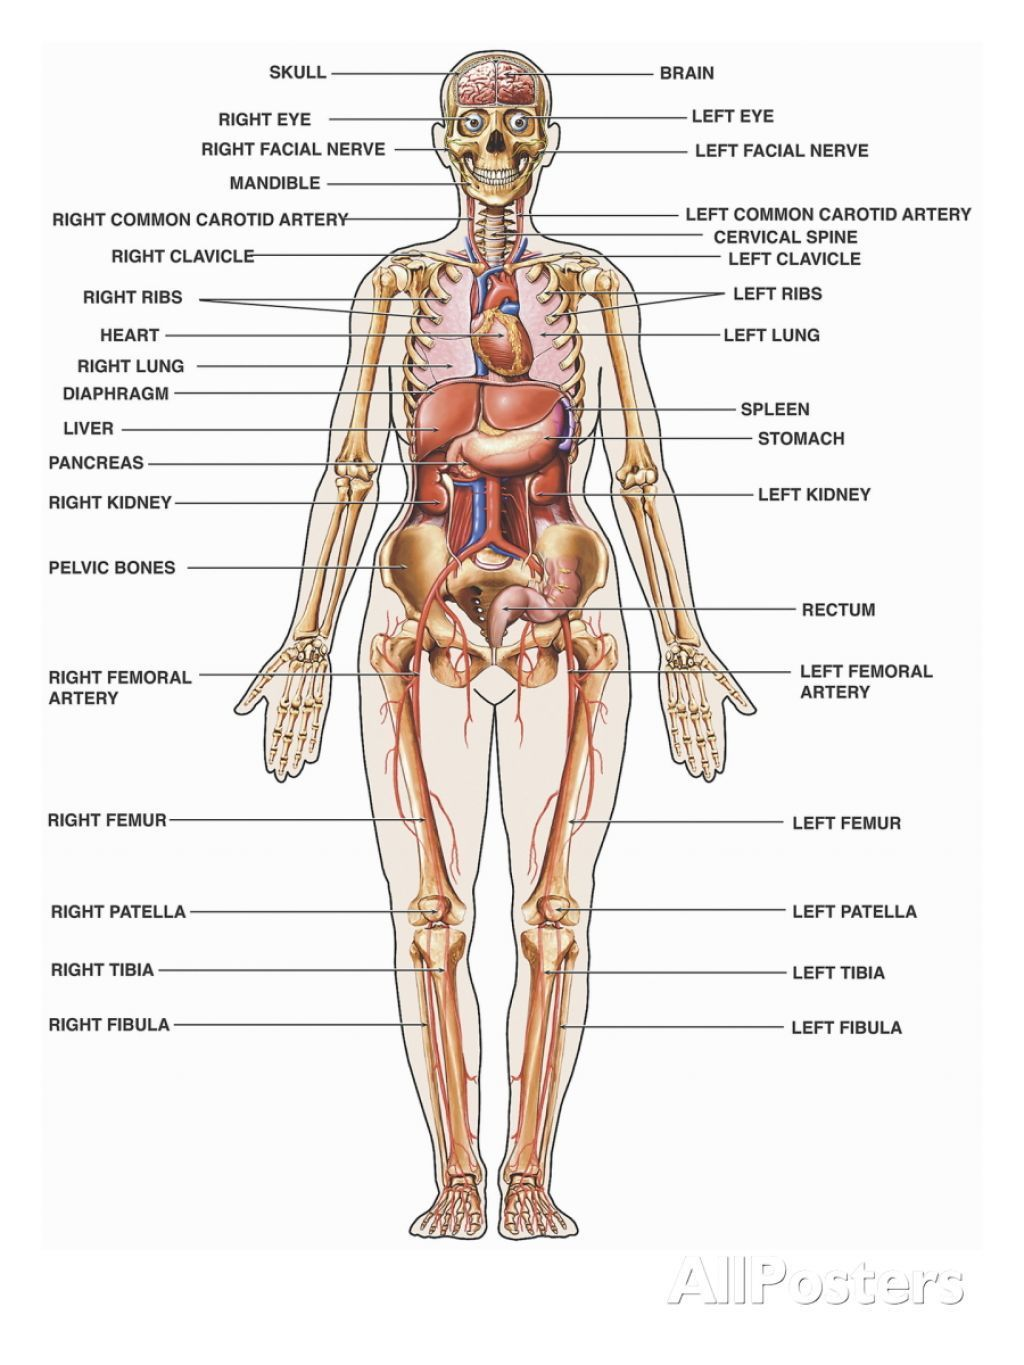 Pictures Of The Human Anatomy Human Anatomy Organs Pinterest